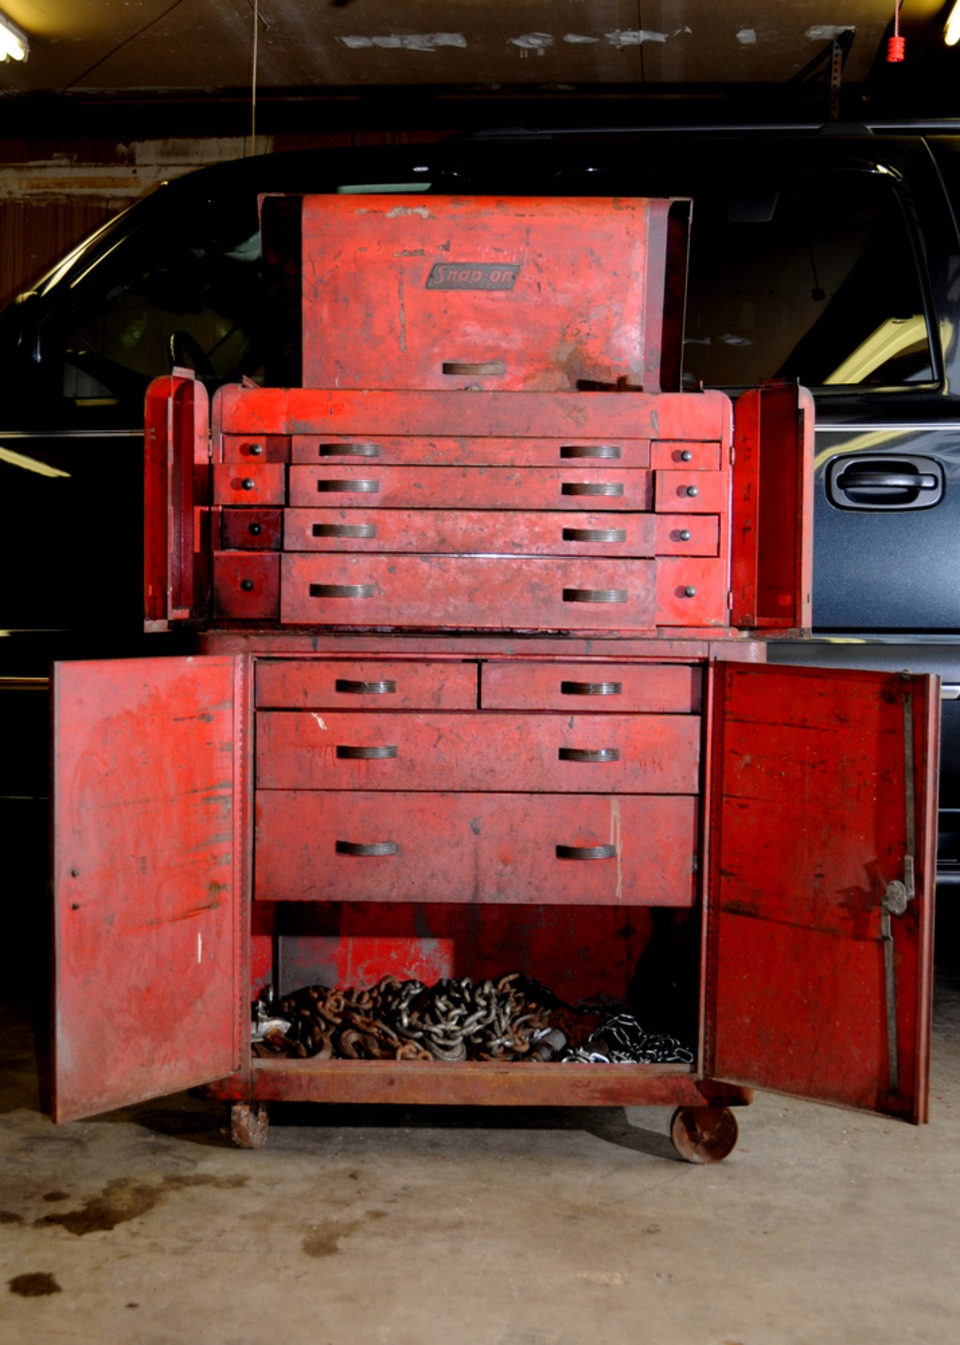 2011 Pten Toolbox Contest Winners Announced